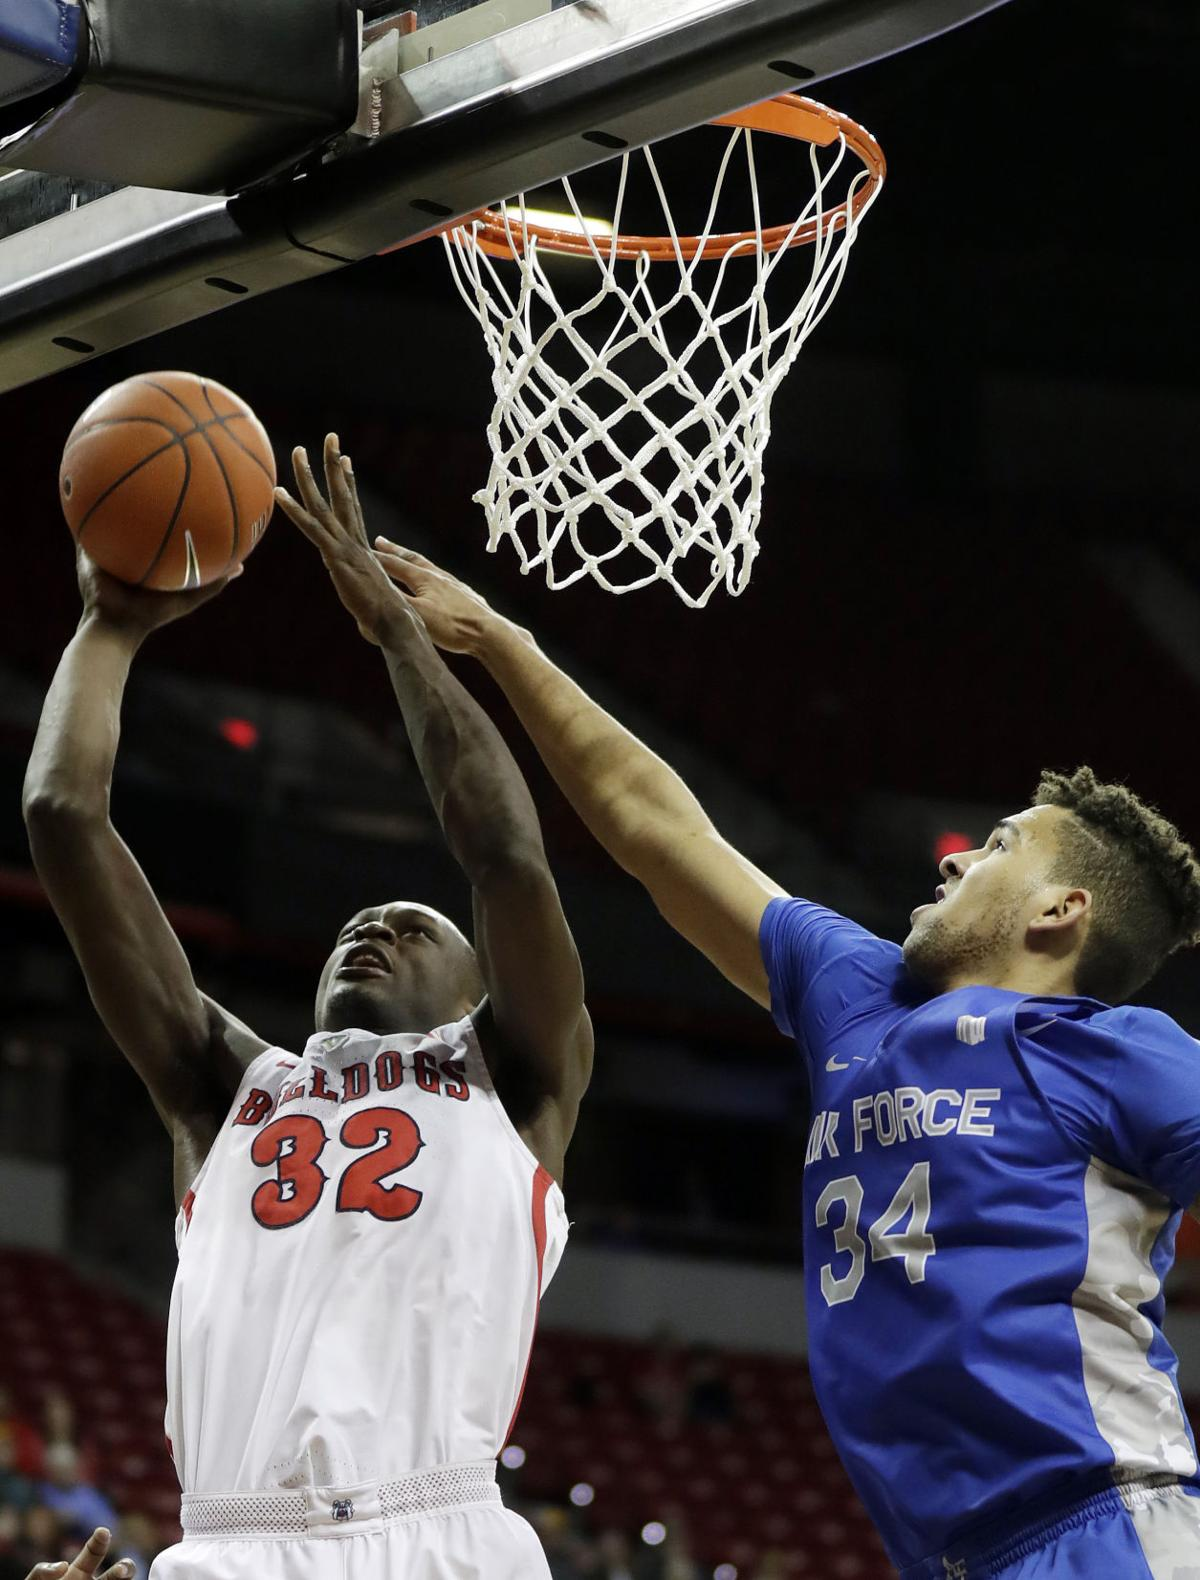 MWC Air Force Fresno St Basketball